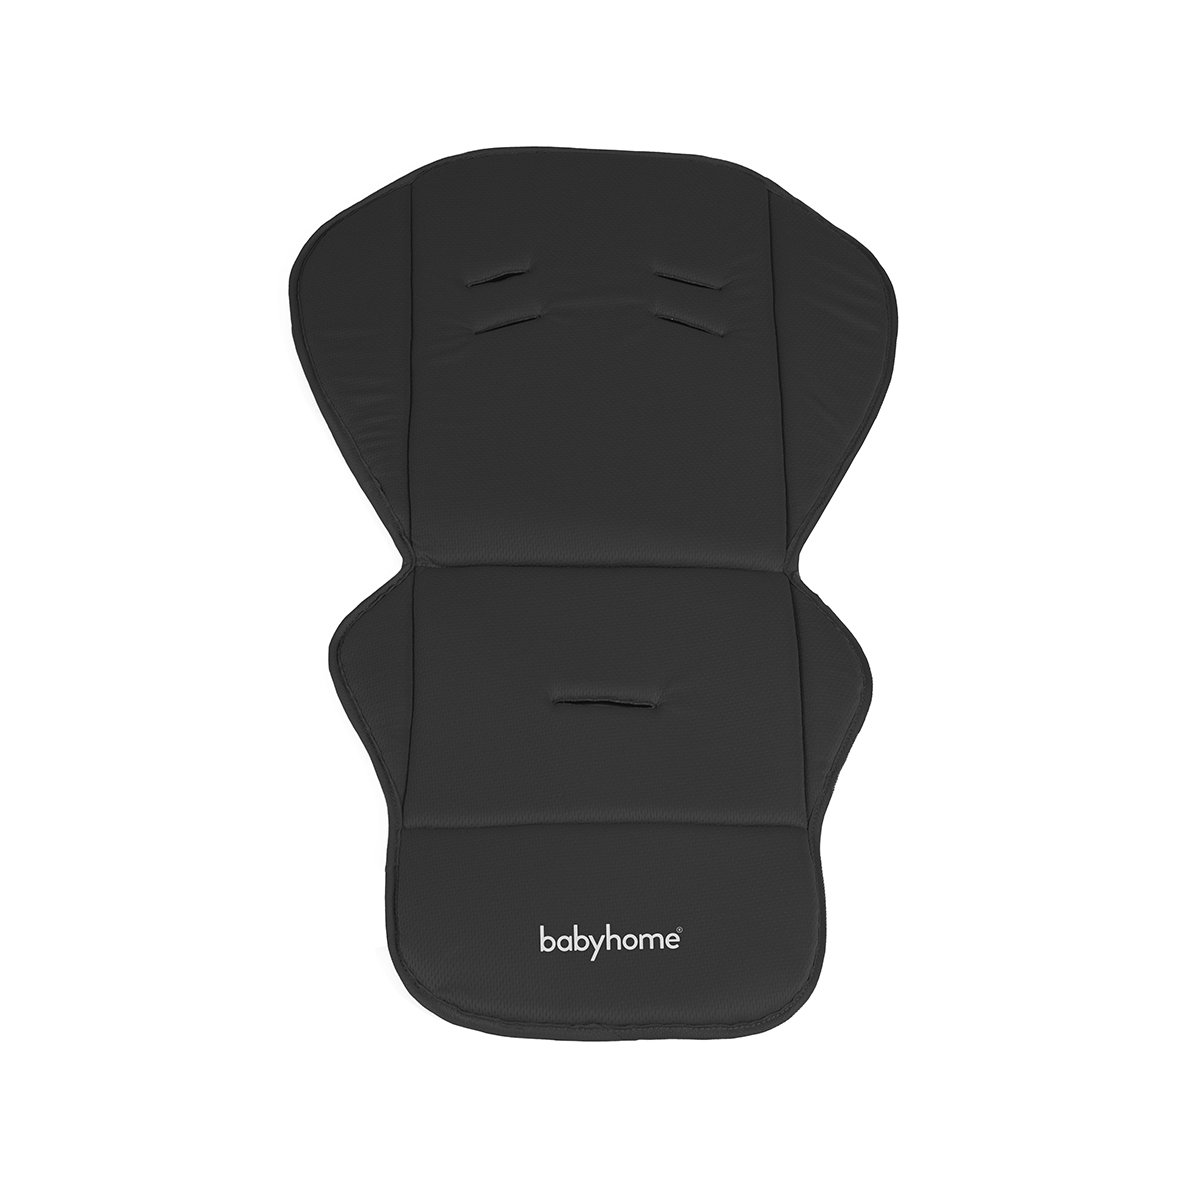 Babyhome Emotion/Vida - Colchoneta, color negro